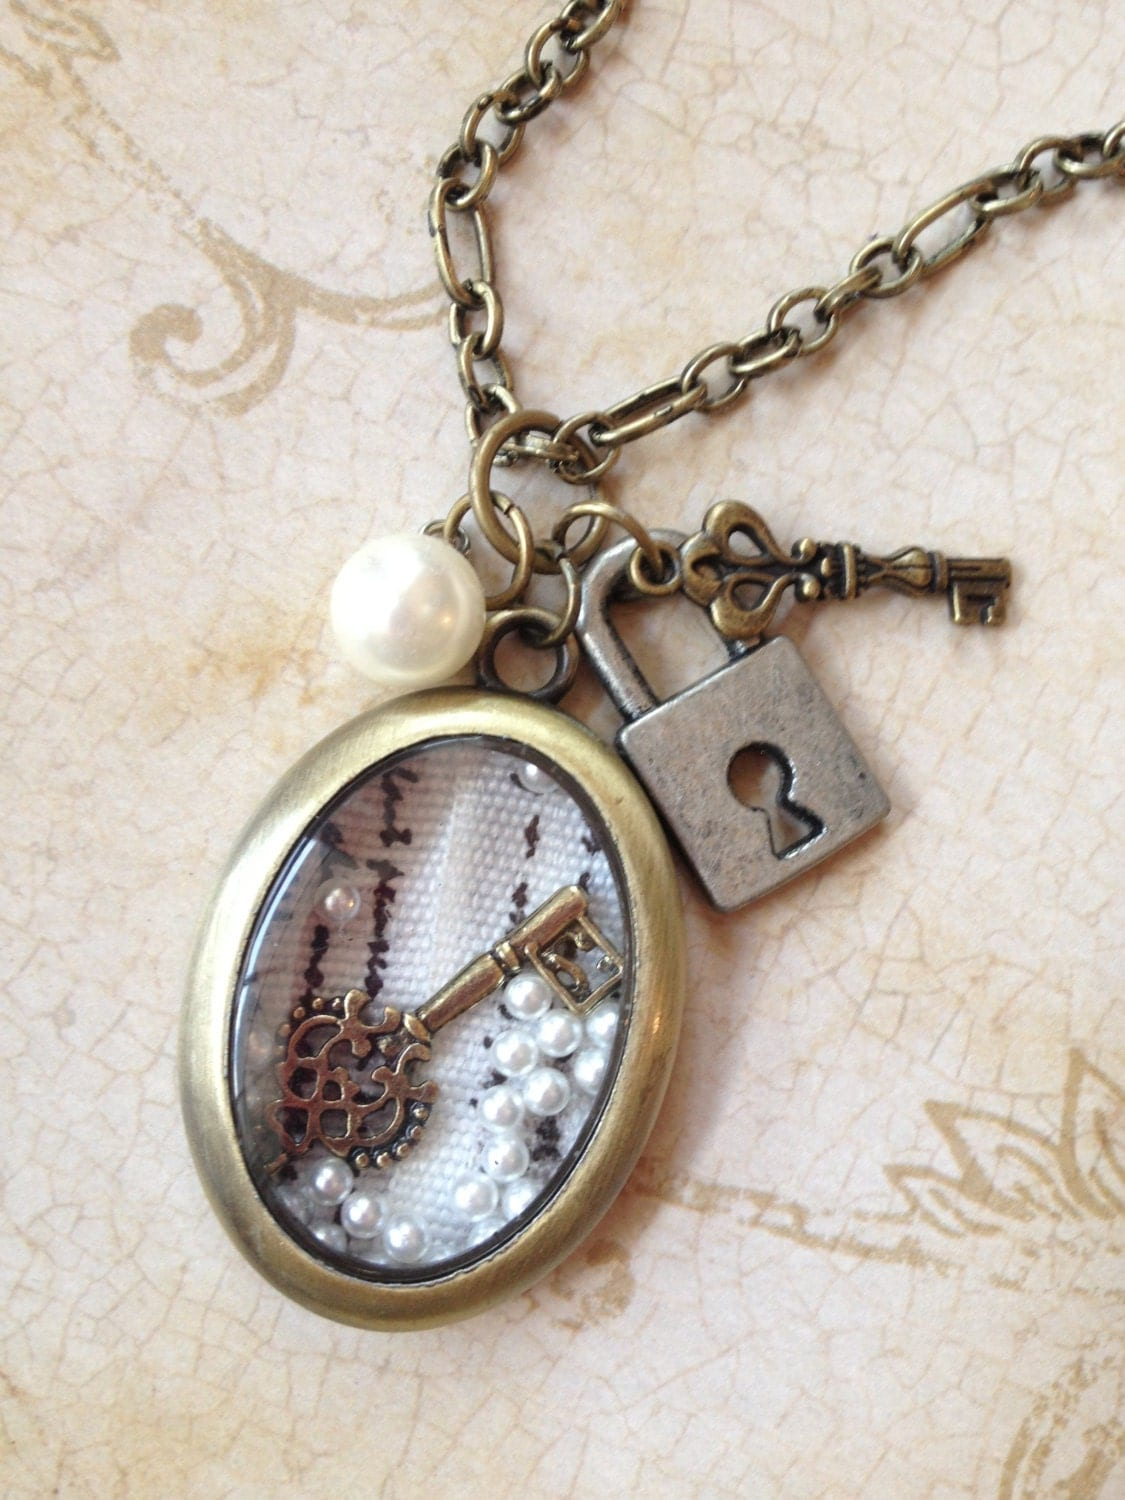 lock and key charms locket pendant necklace jewelry